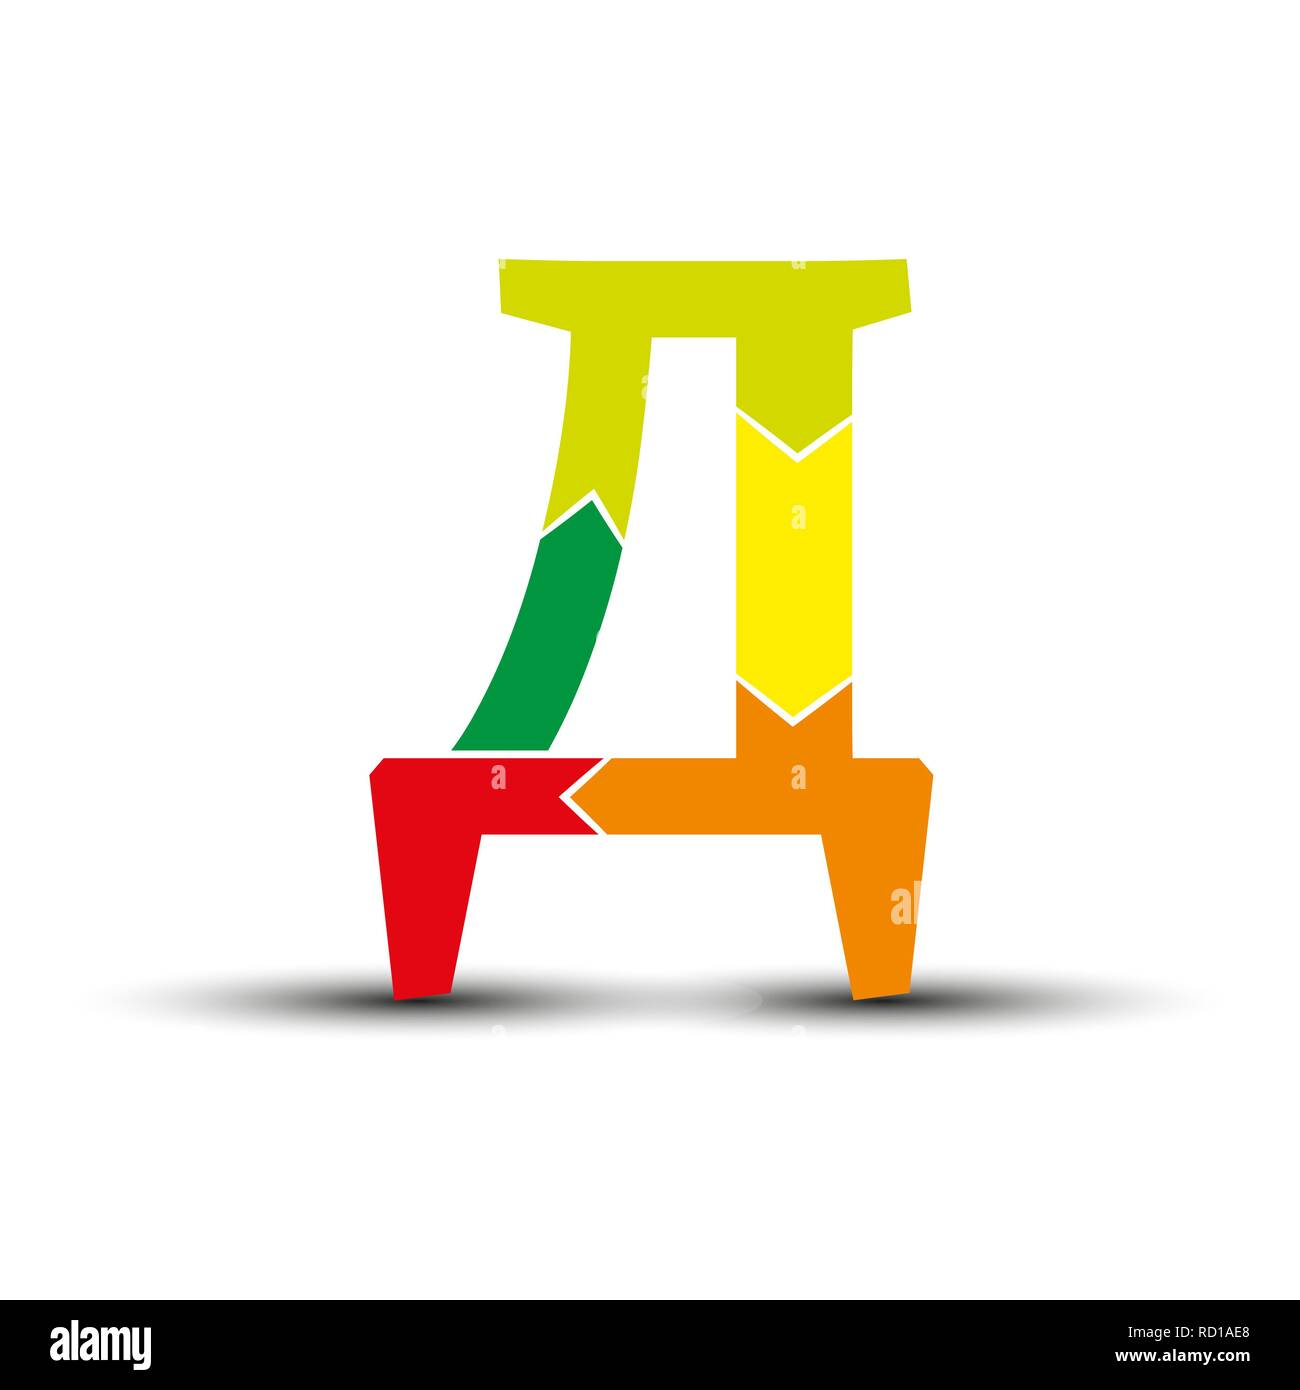 letter D of the Slavic and Cyrillic alphabets is composed of four colored arrows. - Stock Image